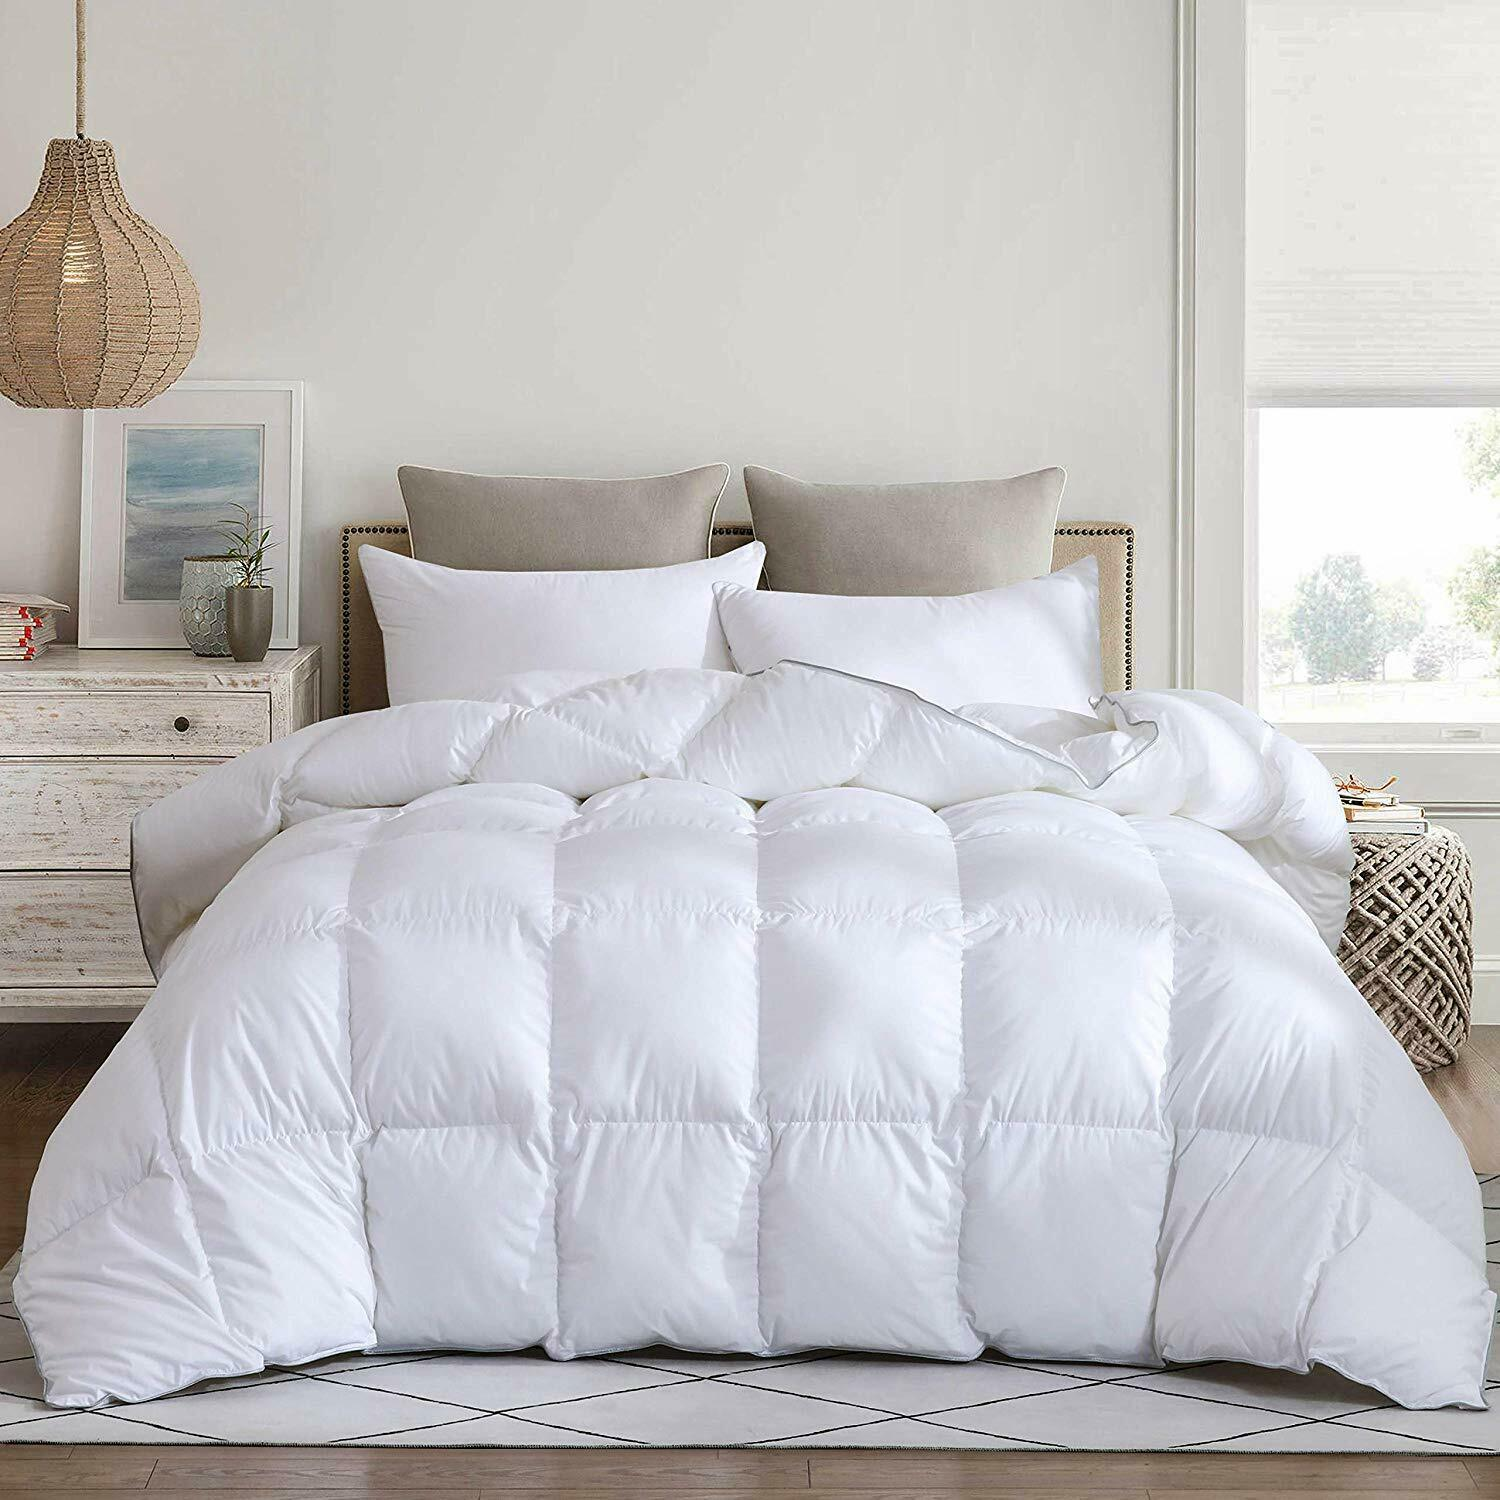 Ikea Comforter 90 Down 10 Duck Feathers Blekvide King Size 502 714 47new For Sale Online Ebay